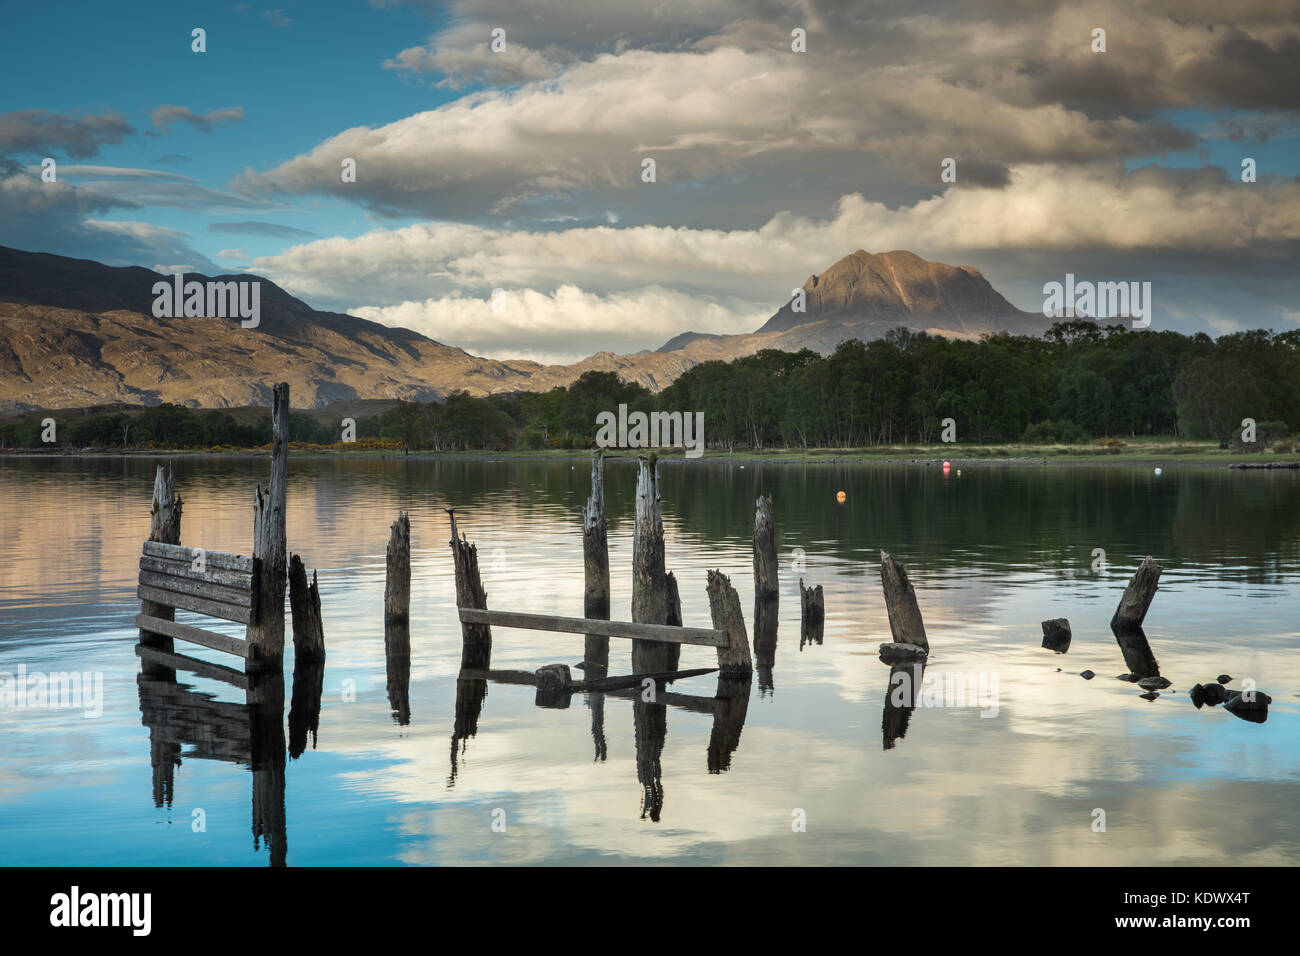 Loch Maree & Slioch, Wester Ross, Scotland, UK - Stock Image